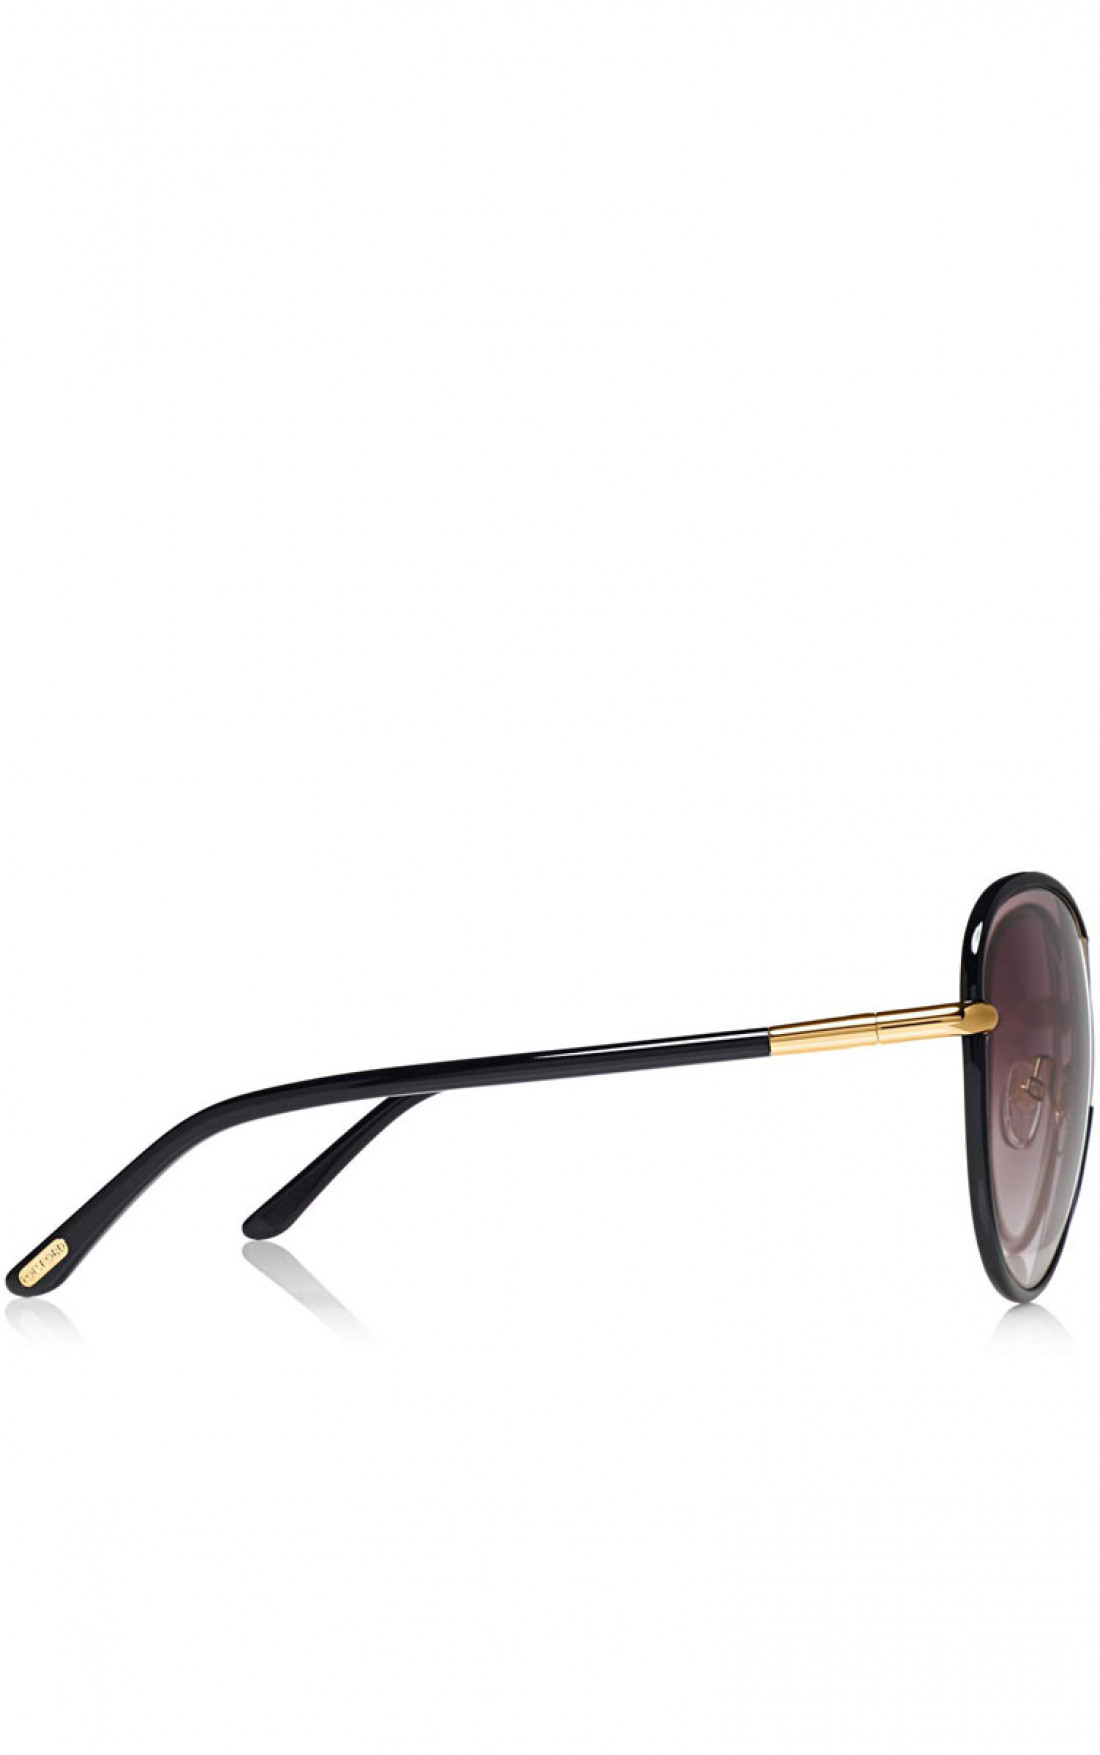 TOM FORD 'Rosie' Oversized Butterfly Sunglasses Black Side (FT0344)